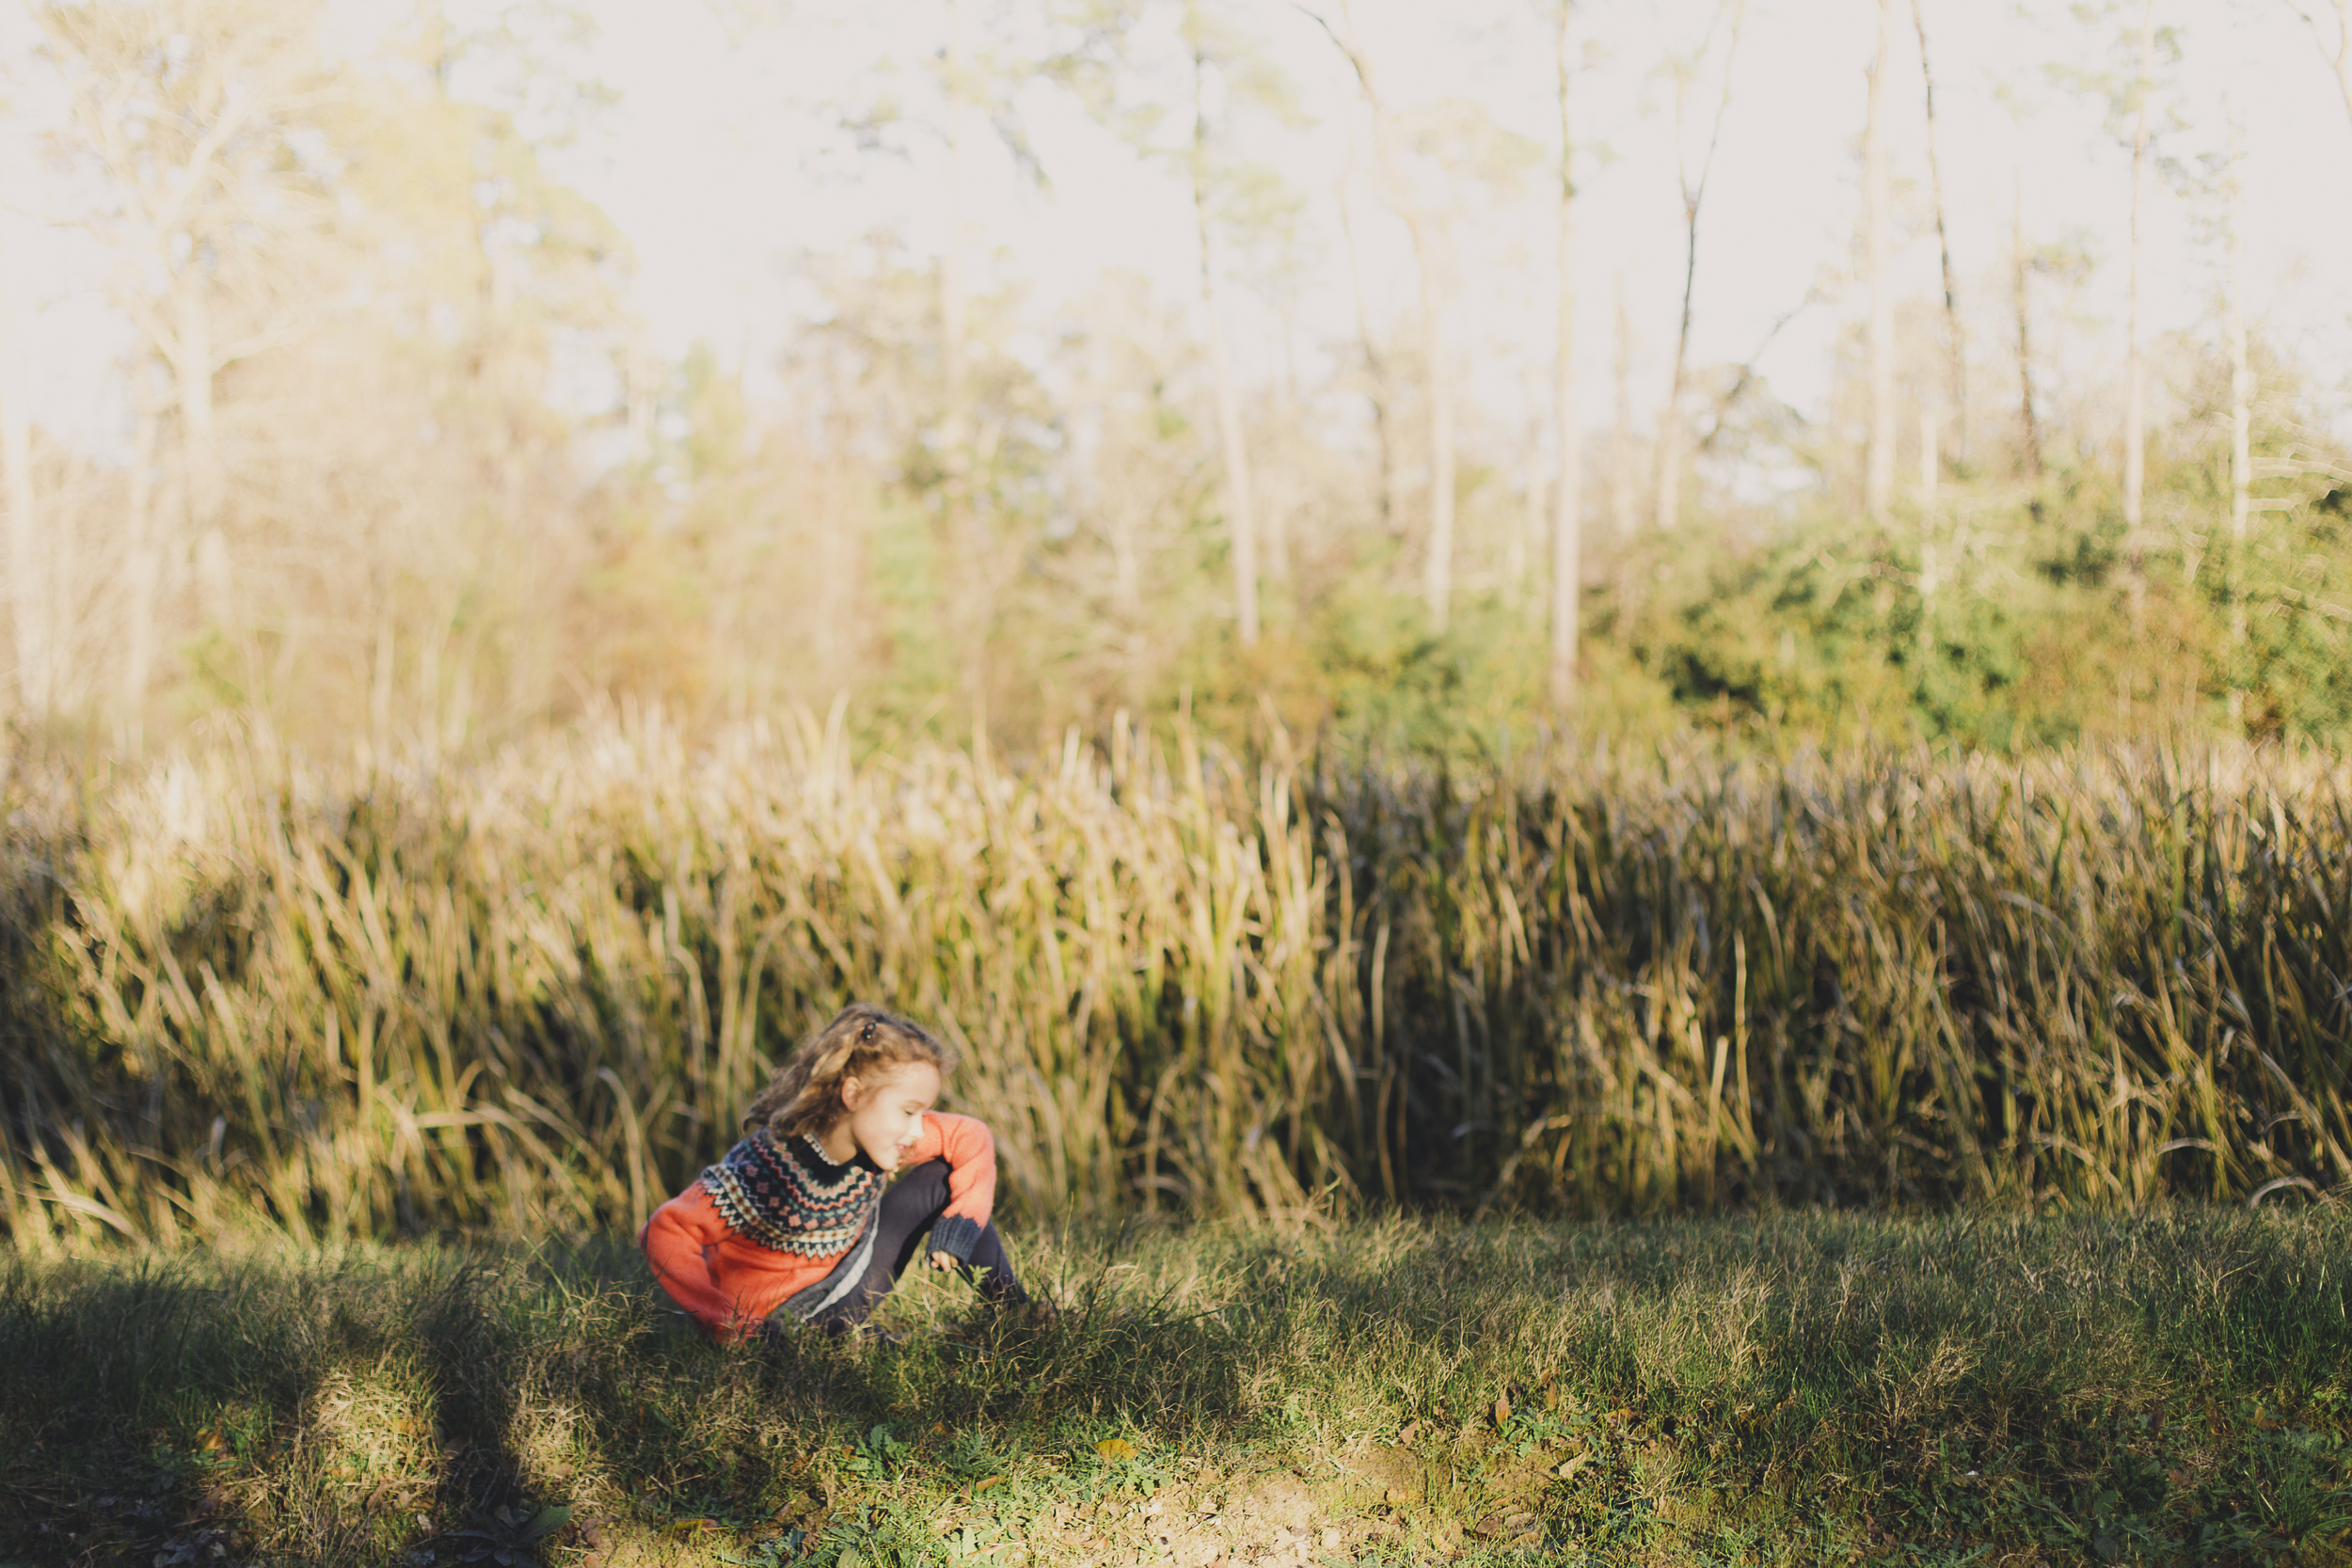 The_Woodlands_Child_Photographer_Lifestyle_Photography